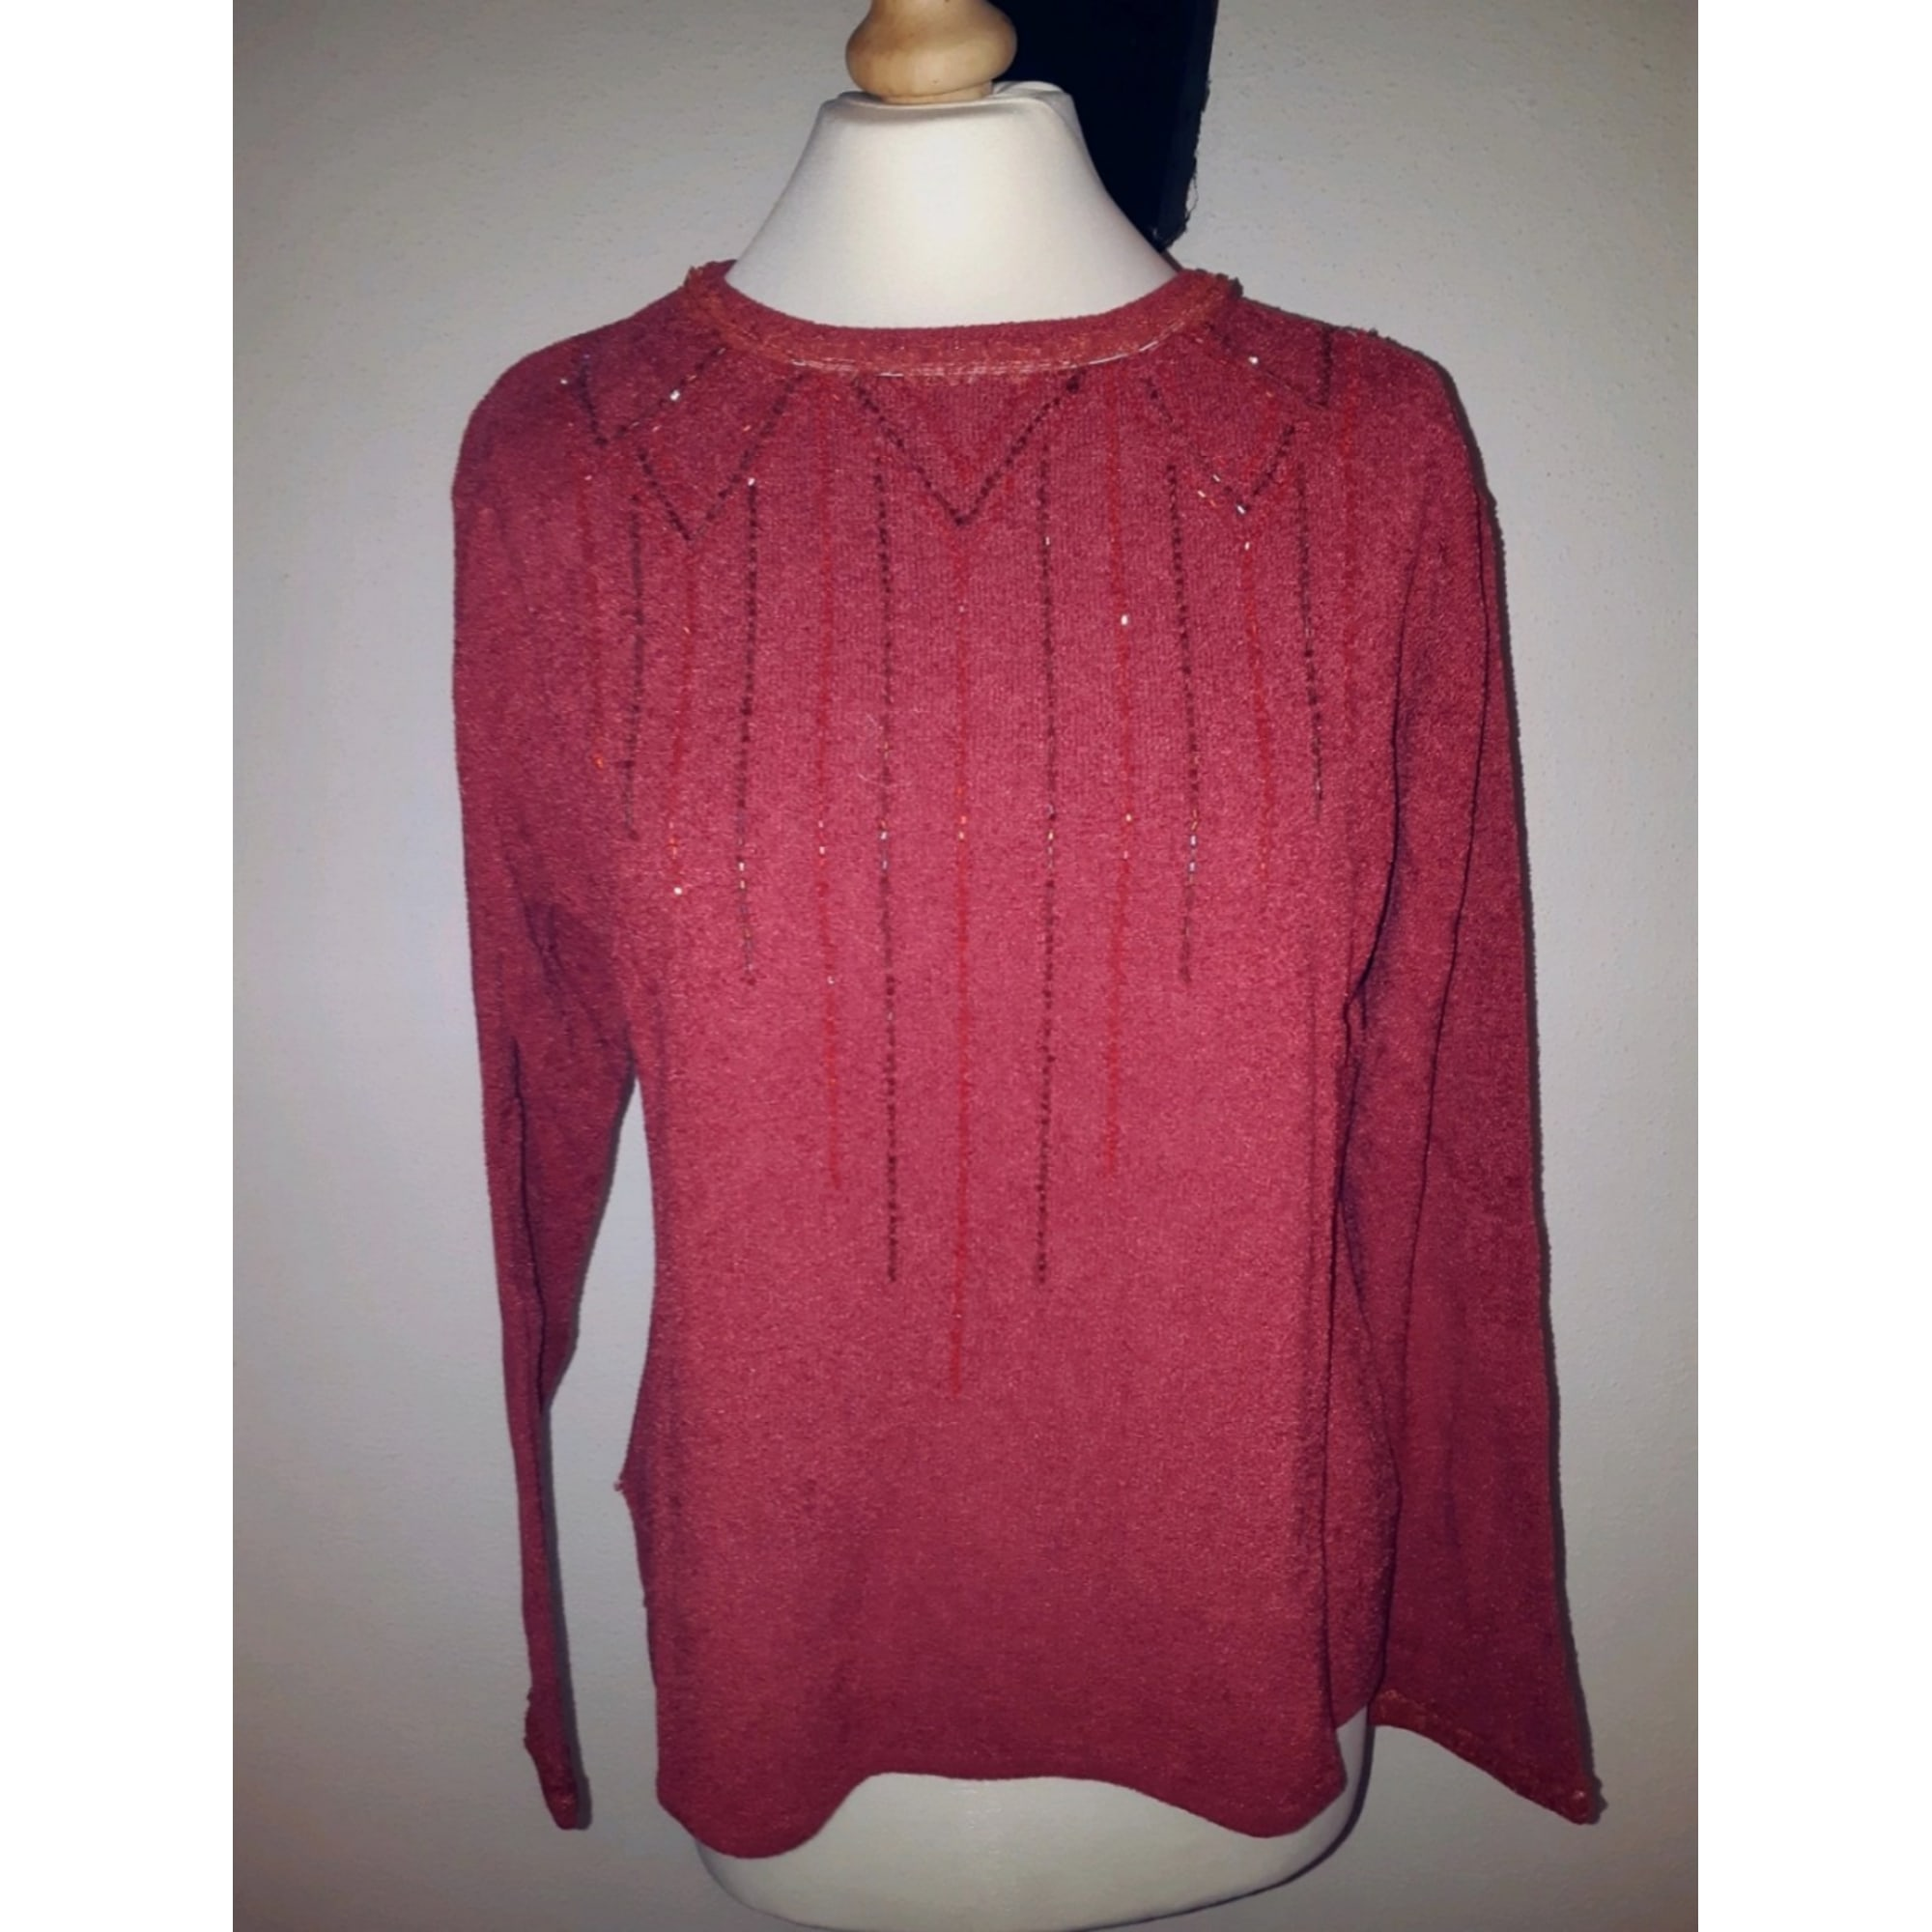 Pull BLANCH ROSE Rouge, bordeaux